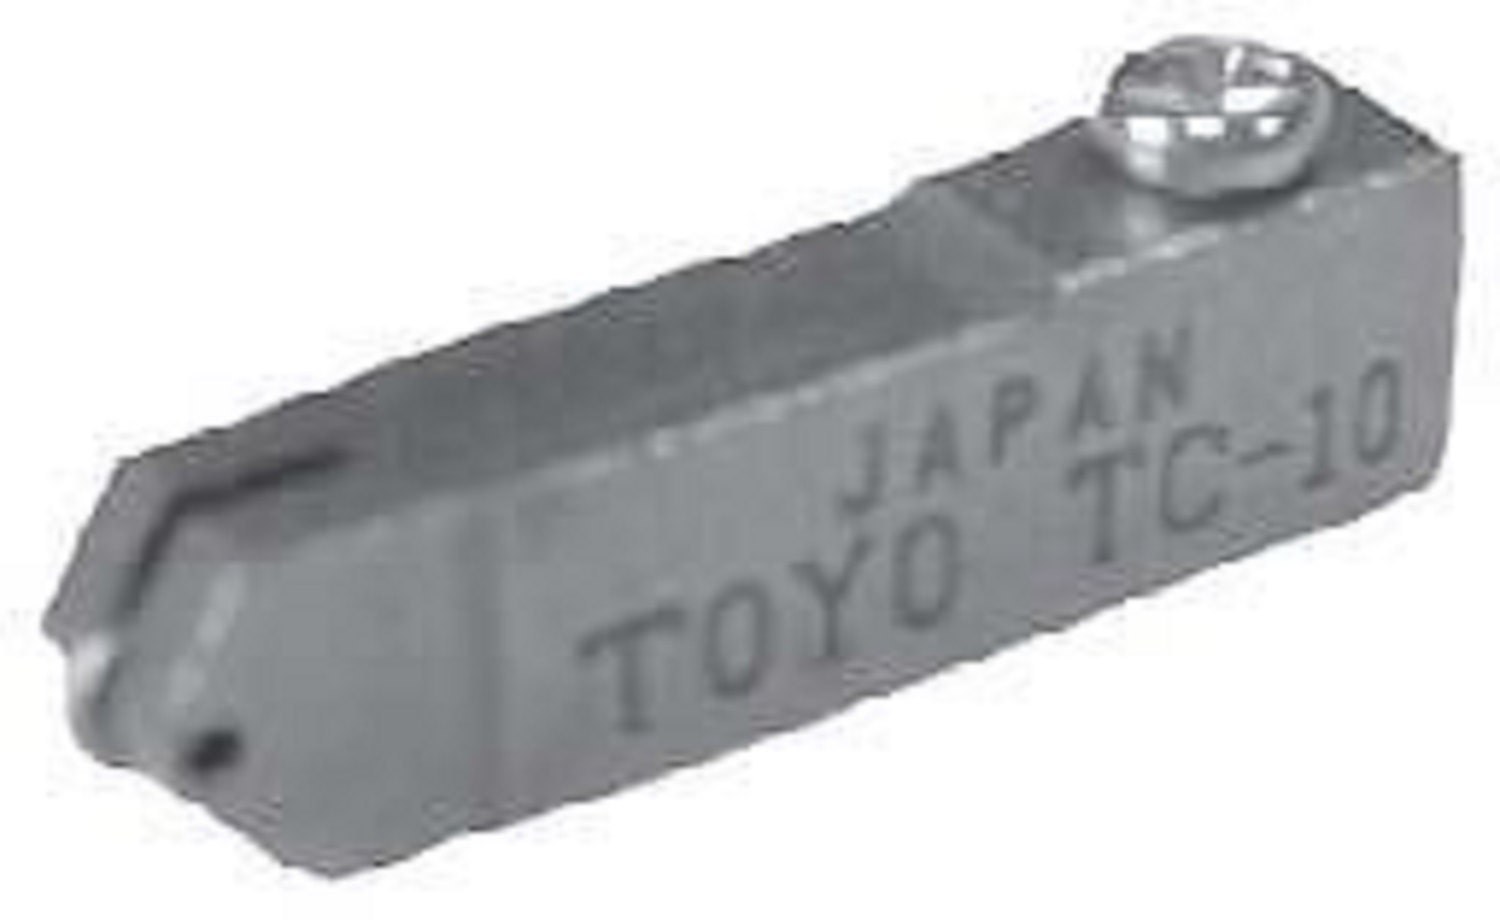 Toyo Replacement Small Cutter head TC21V fits Toyo Custom Grip Cutter